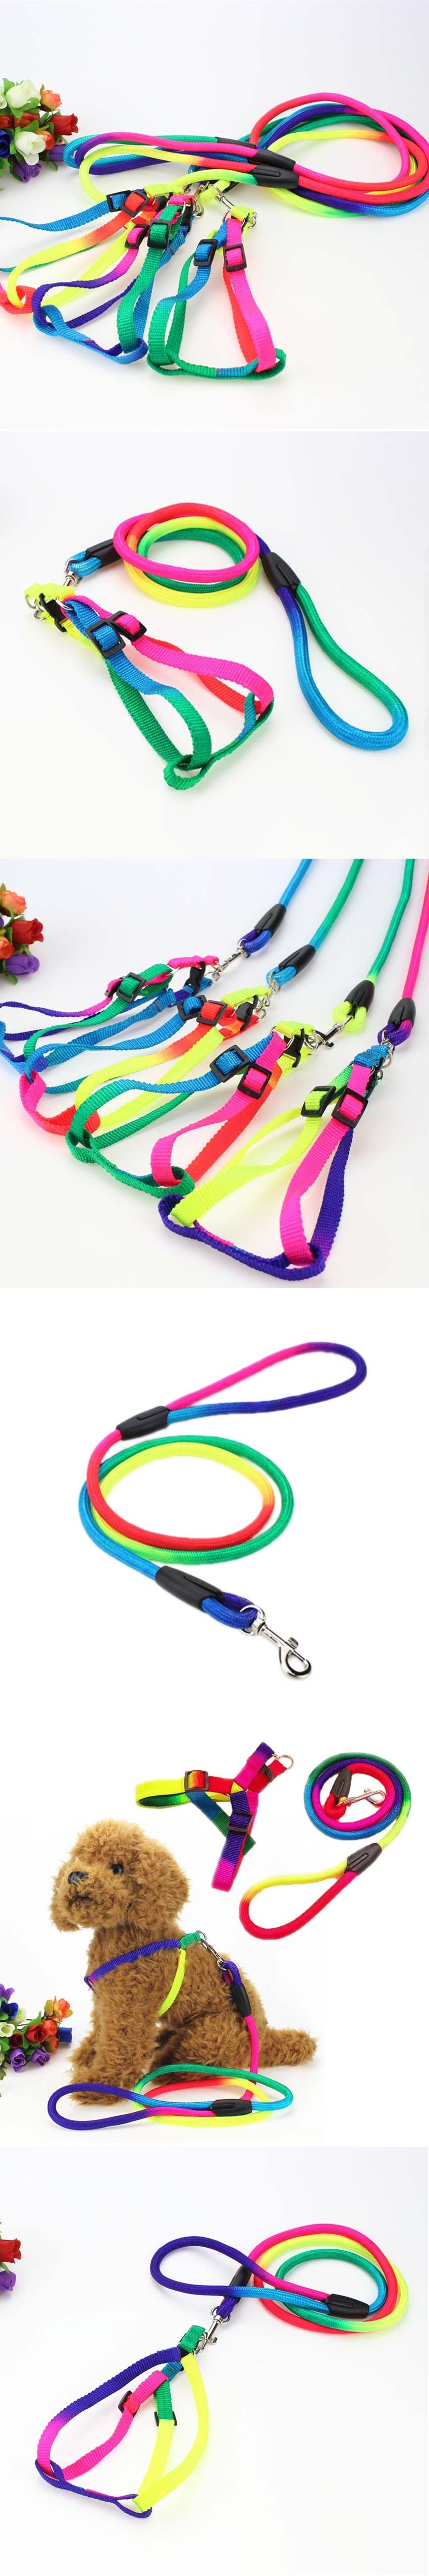 High Quality Adjustable Rainbow Color Pet Dog Lead Leash Small Puppy Rabbit Harness Wiring Cat Kitten Breast Band Nylon S M L